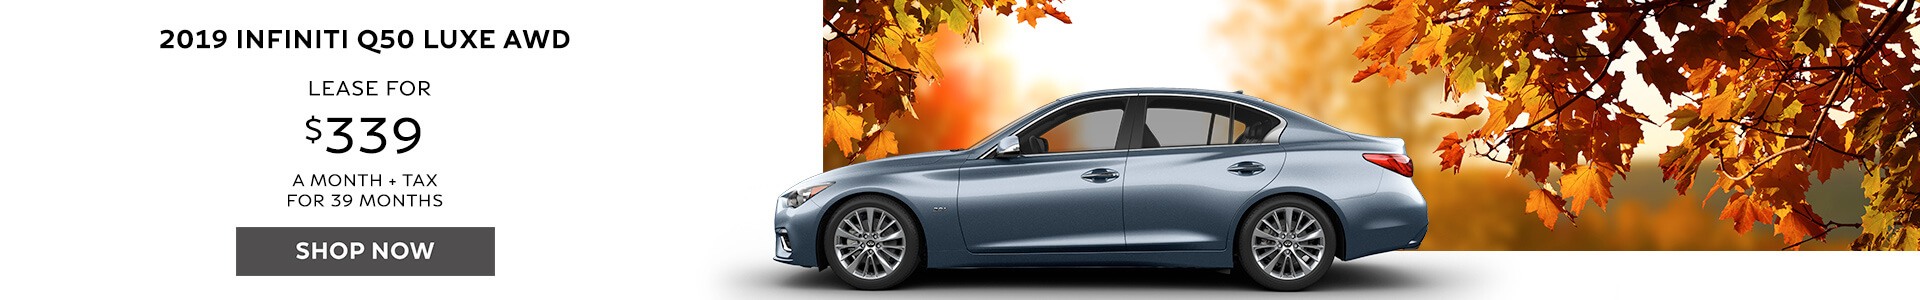 Q50 LUXE - Lease for $339